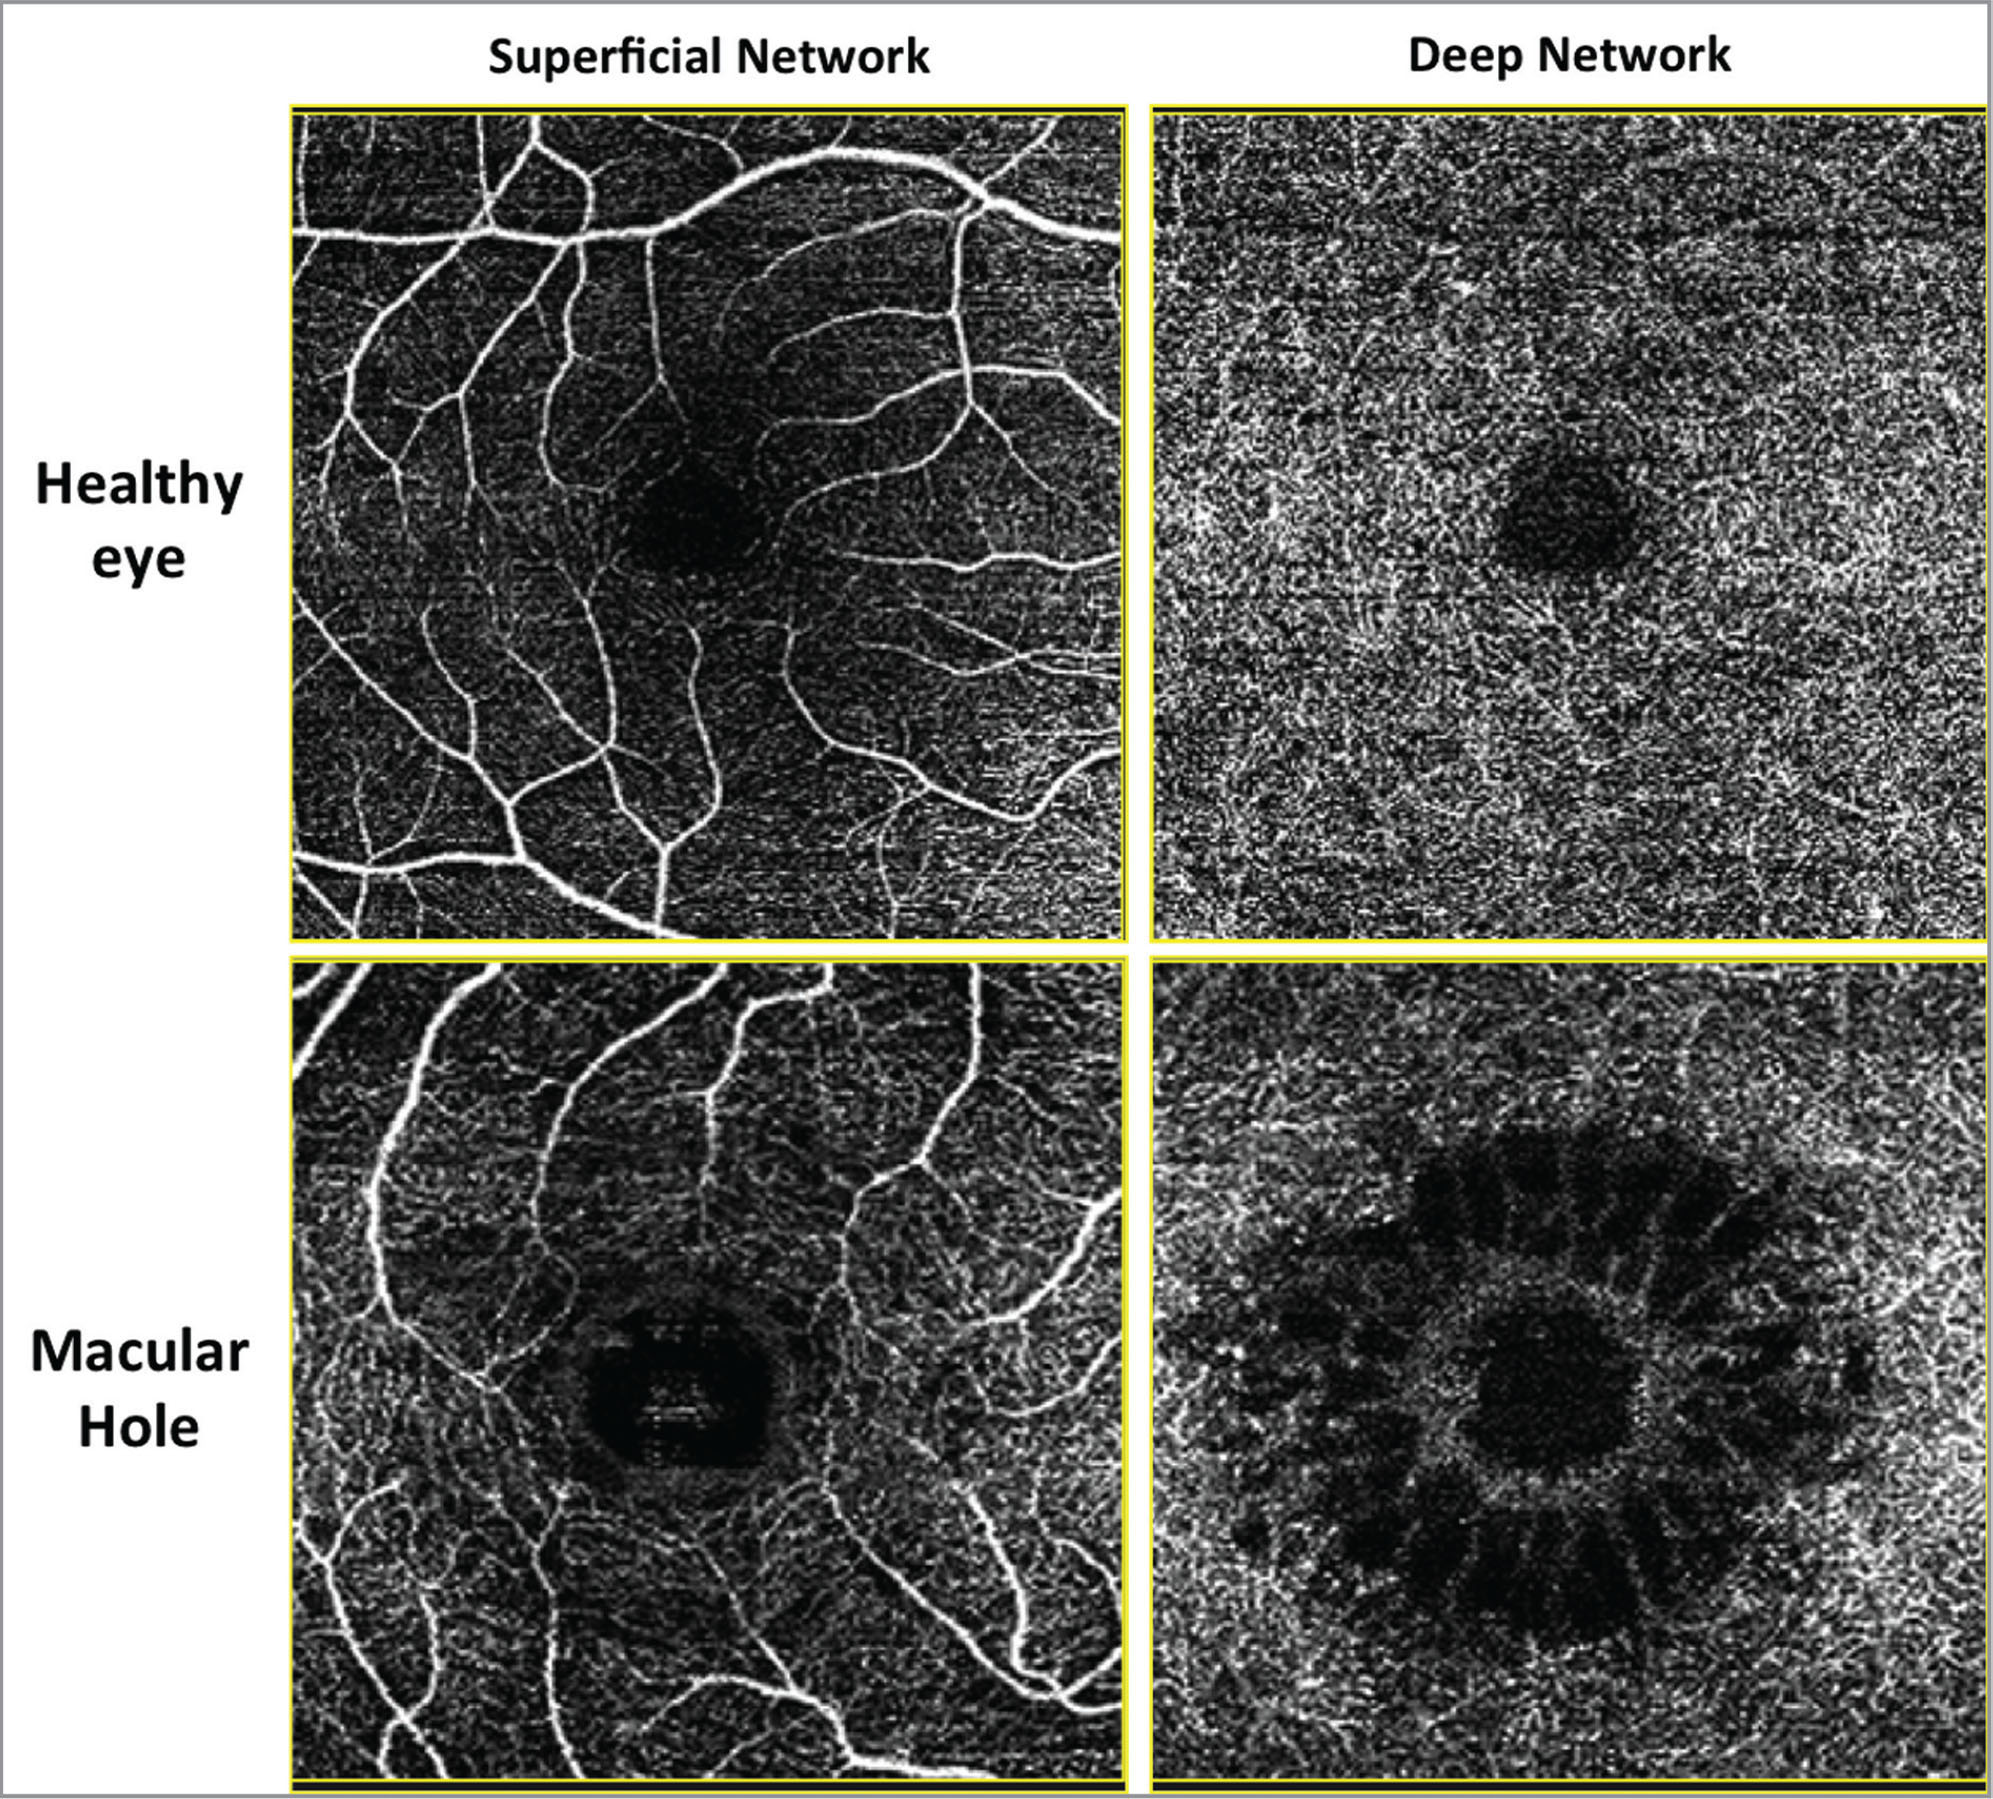 Optical coherence tomography angiography of a healthy eye and an eye with macular hole. The retinal vascular differences between the healthy and pathologic eye correspond mainly to the deep network of vessels. Small, circular, hyporeflective spaces are present surrounding the macular hole in the inner nuclear layer, whereas elongated radial hyporeflective cavities forming a stellar pattern are observed in the outer plexiform/Henle fiber layers complex.